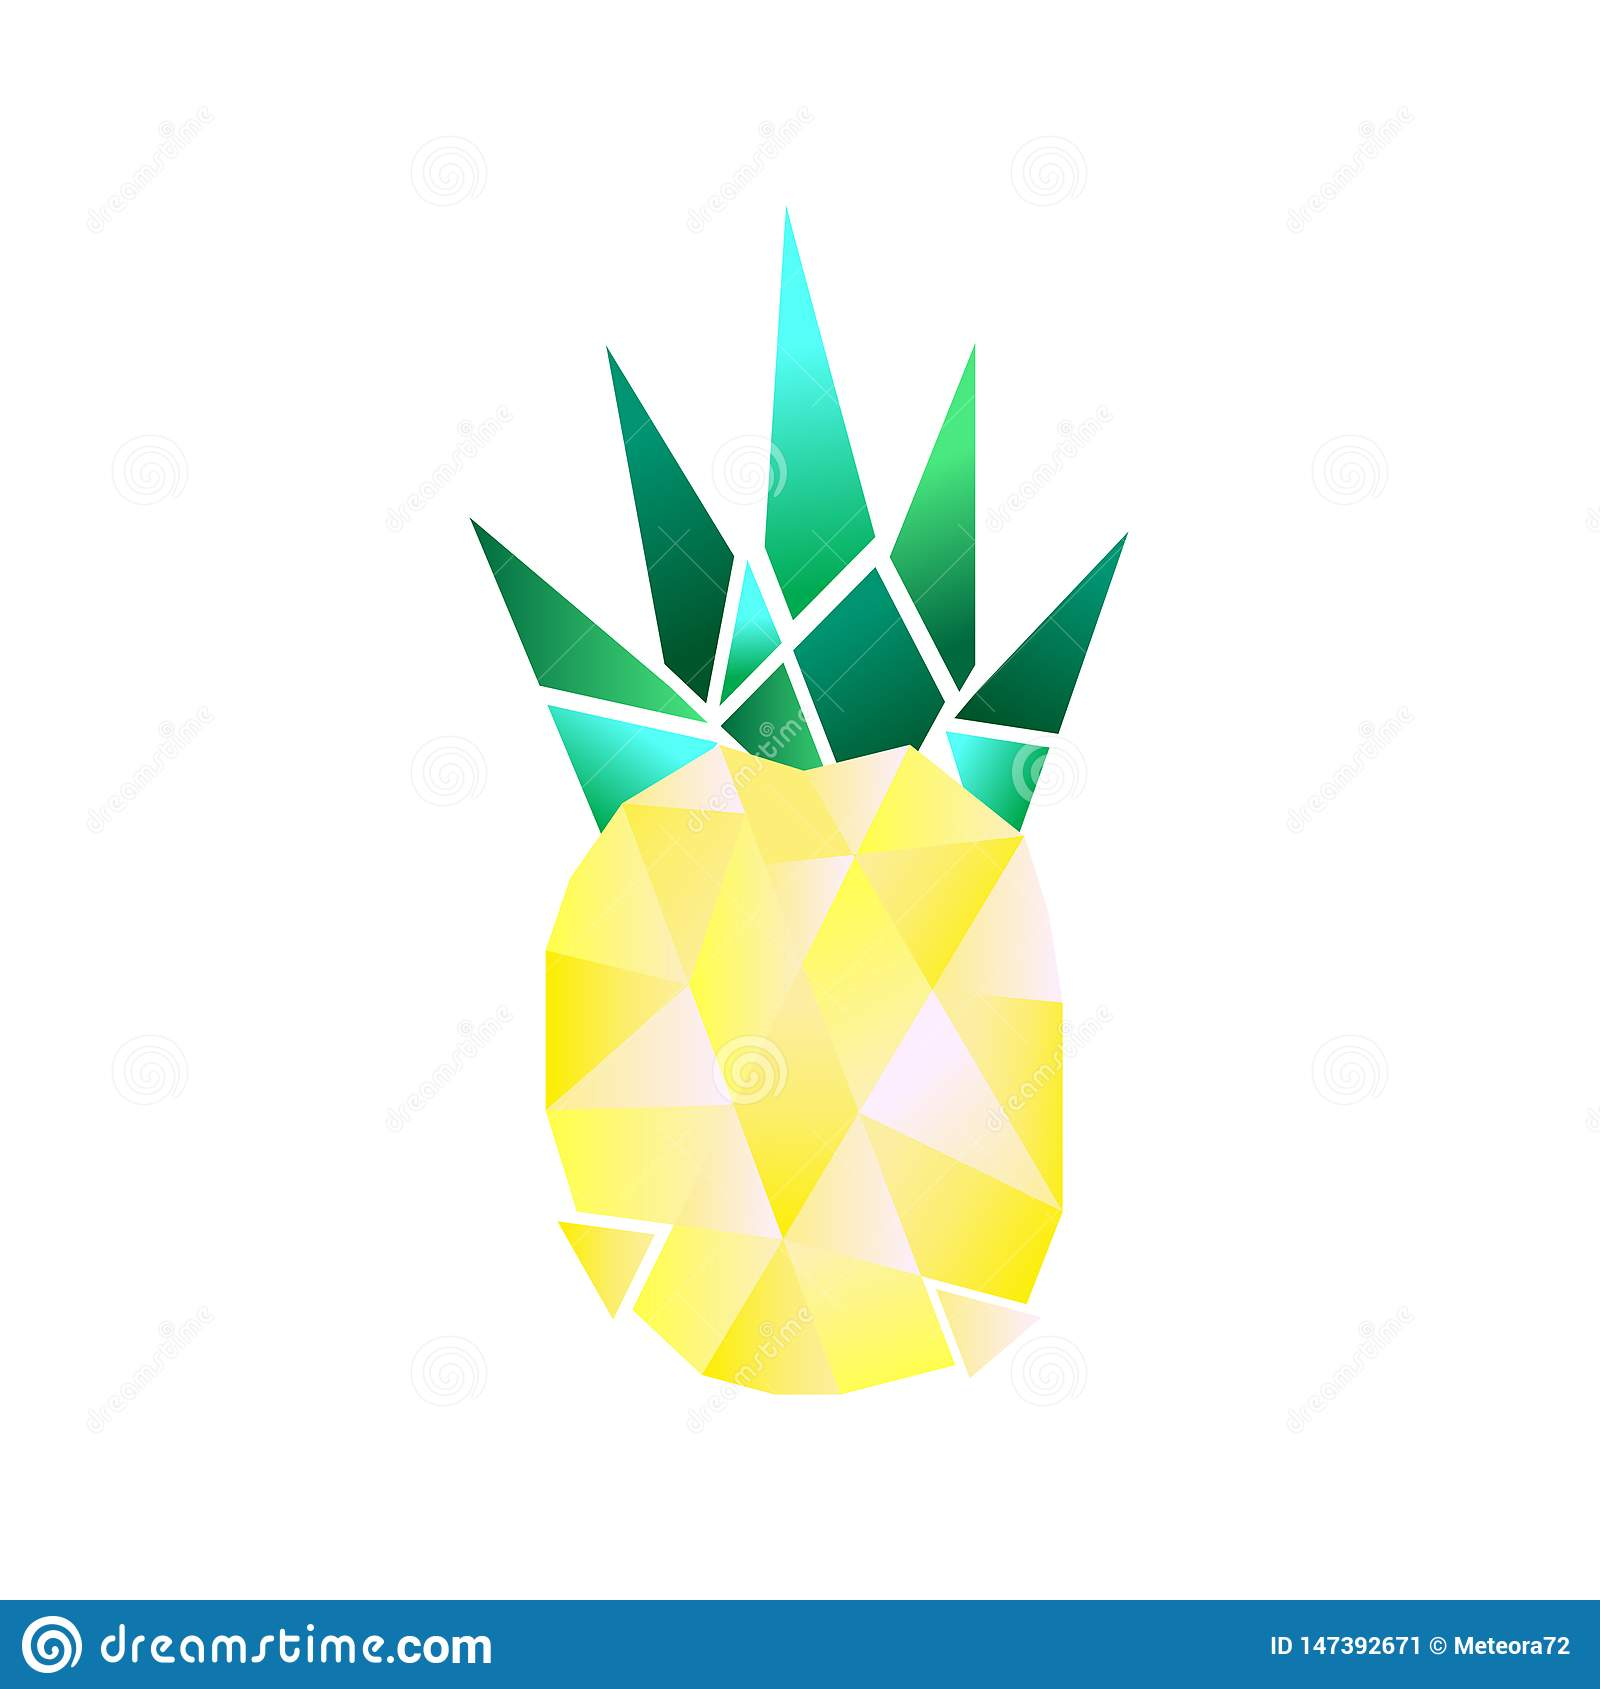 Simple raster polygonal pineapple. Nice illustration.